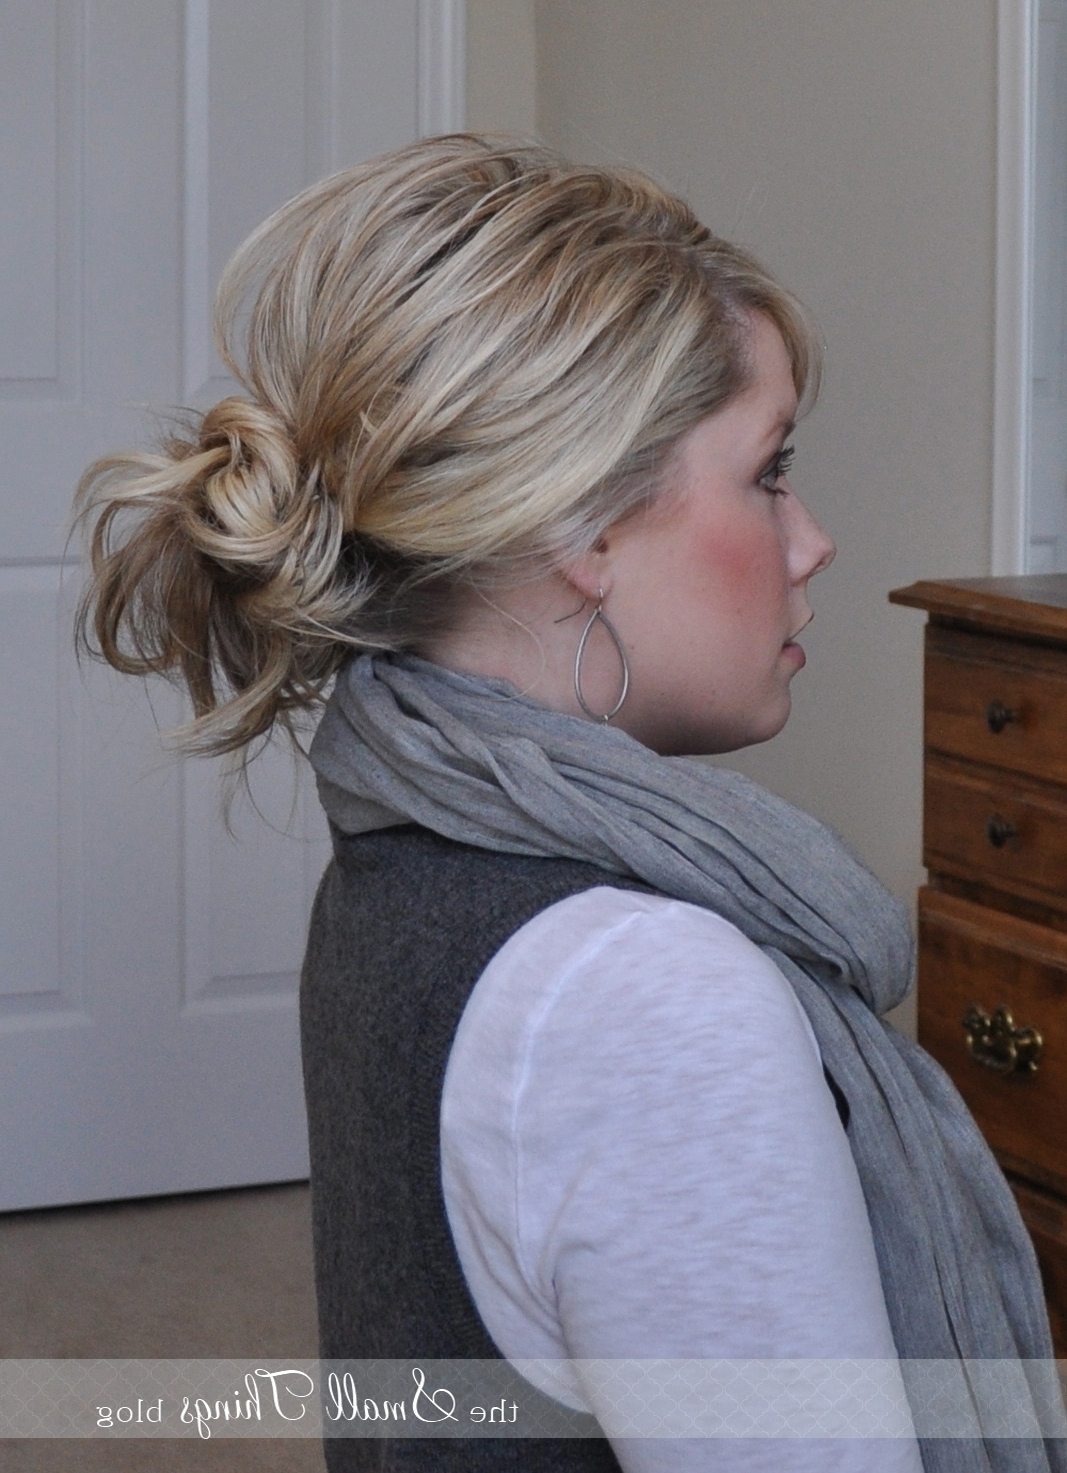 Newest Curled Up Messy Ponytail Hairstyles For Messy Ponytail/bun – The Small Things Blog (View 14 of 20)